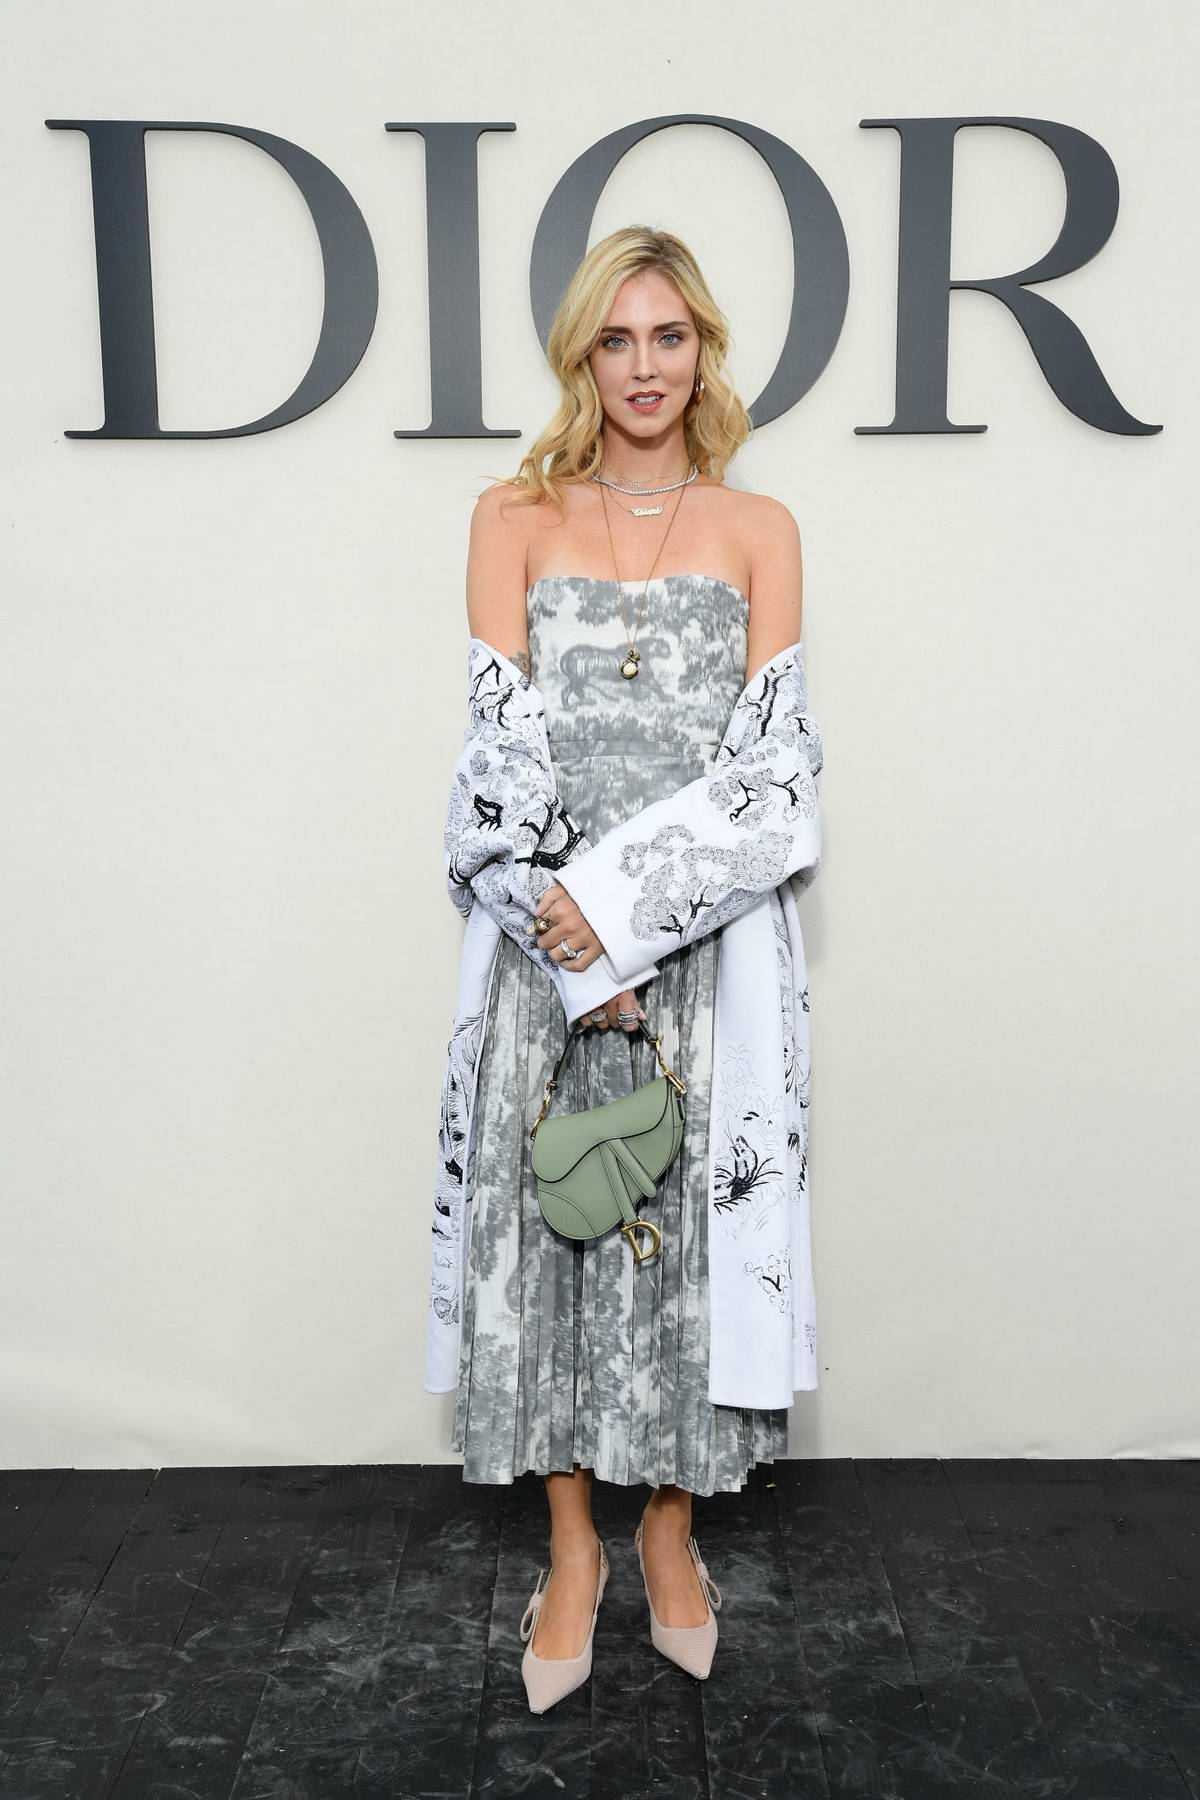 Chiara Ferragni attends the Christian Dior Show during Paris Fashion Week in Paris, France